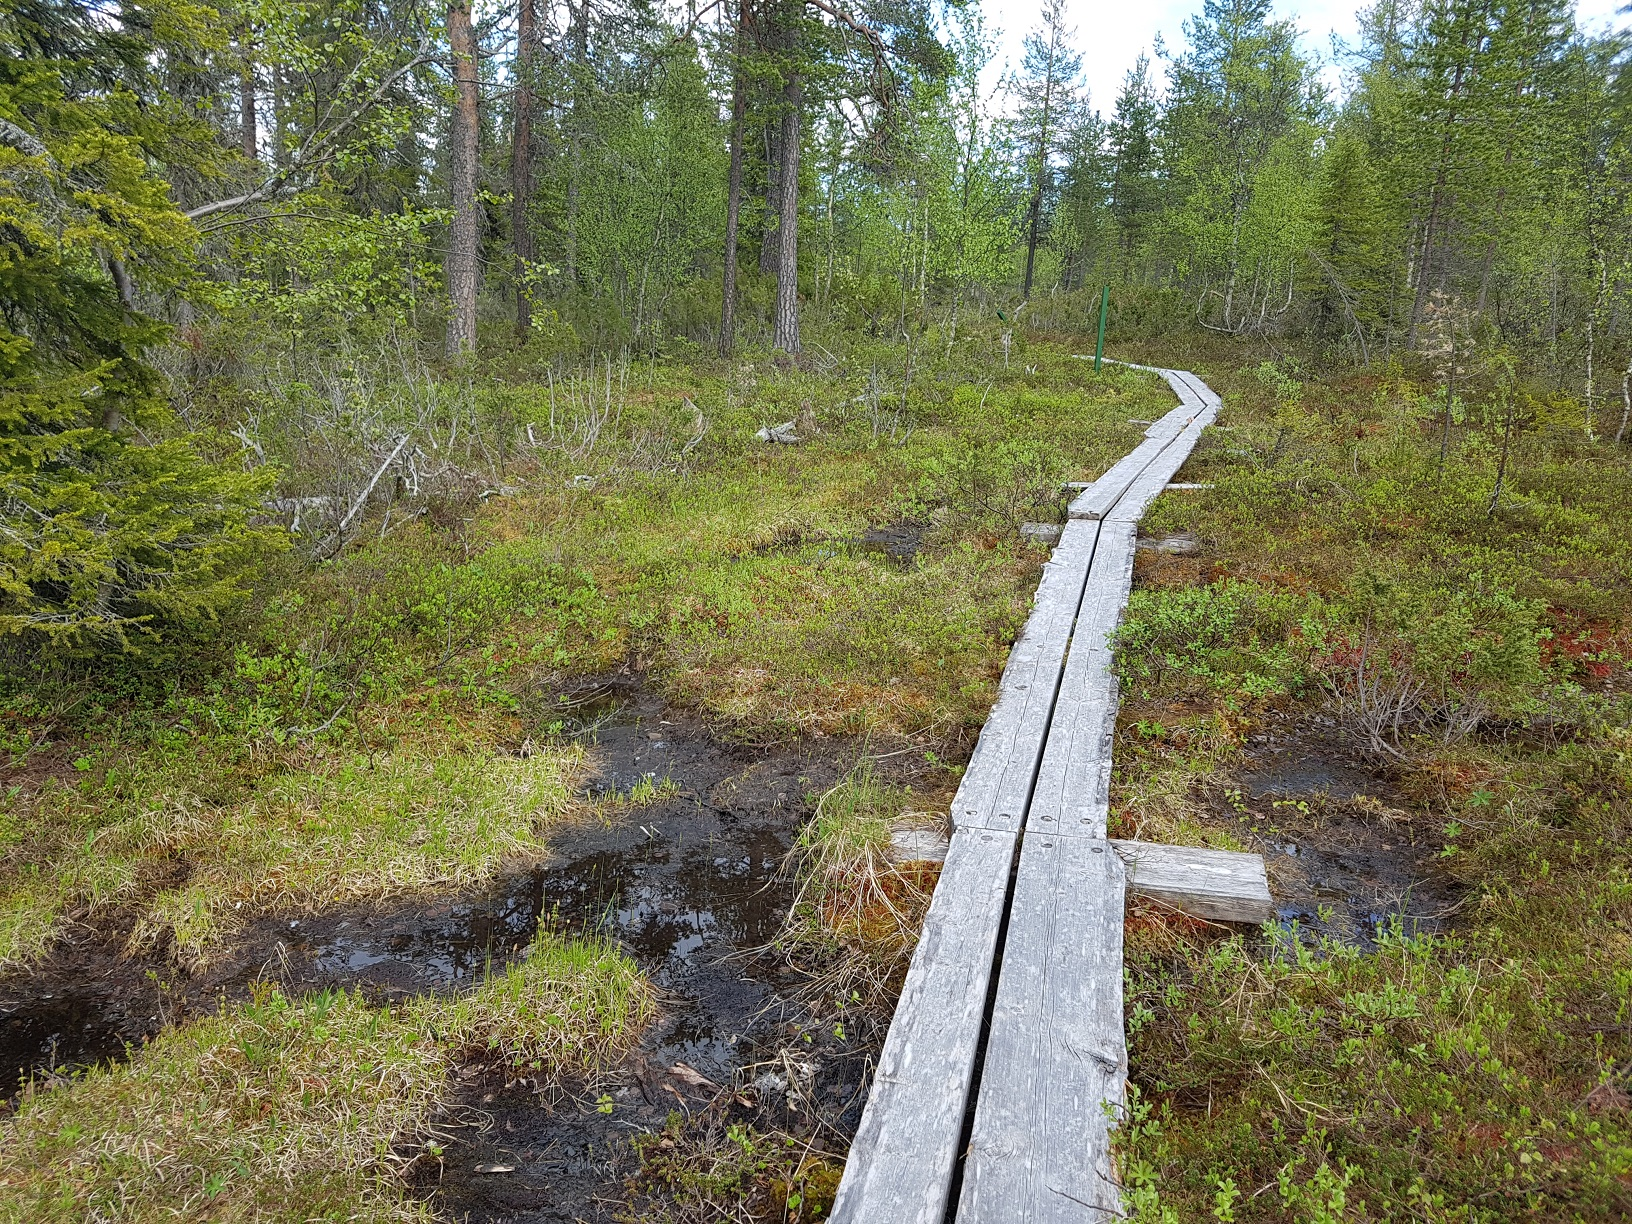 Urho-Kekkonen-Nationalpark